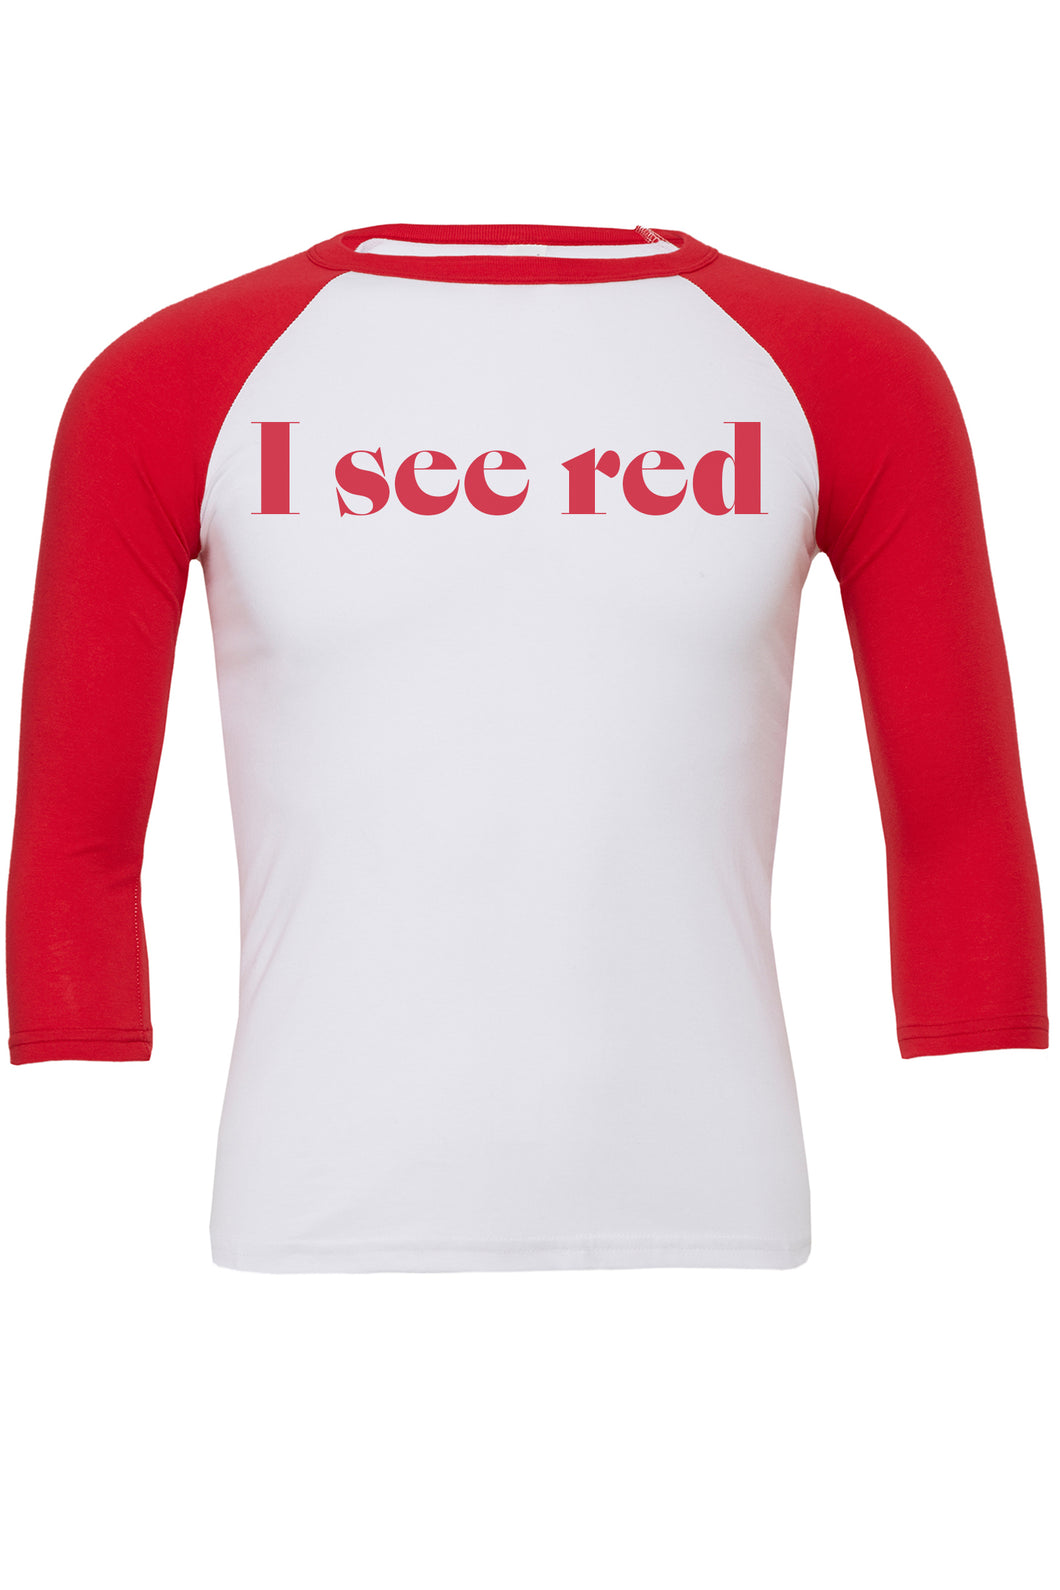 Geowulf I See Red T-shirt